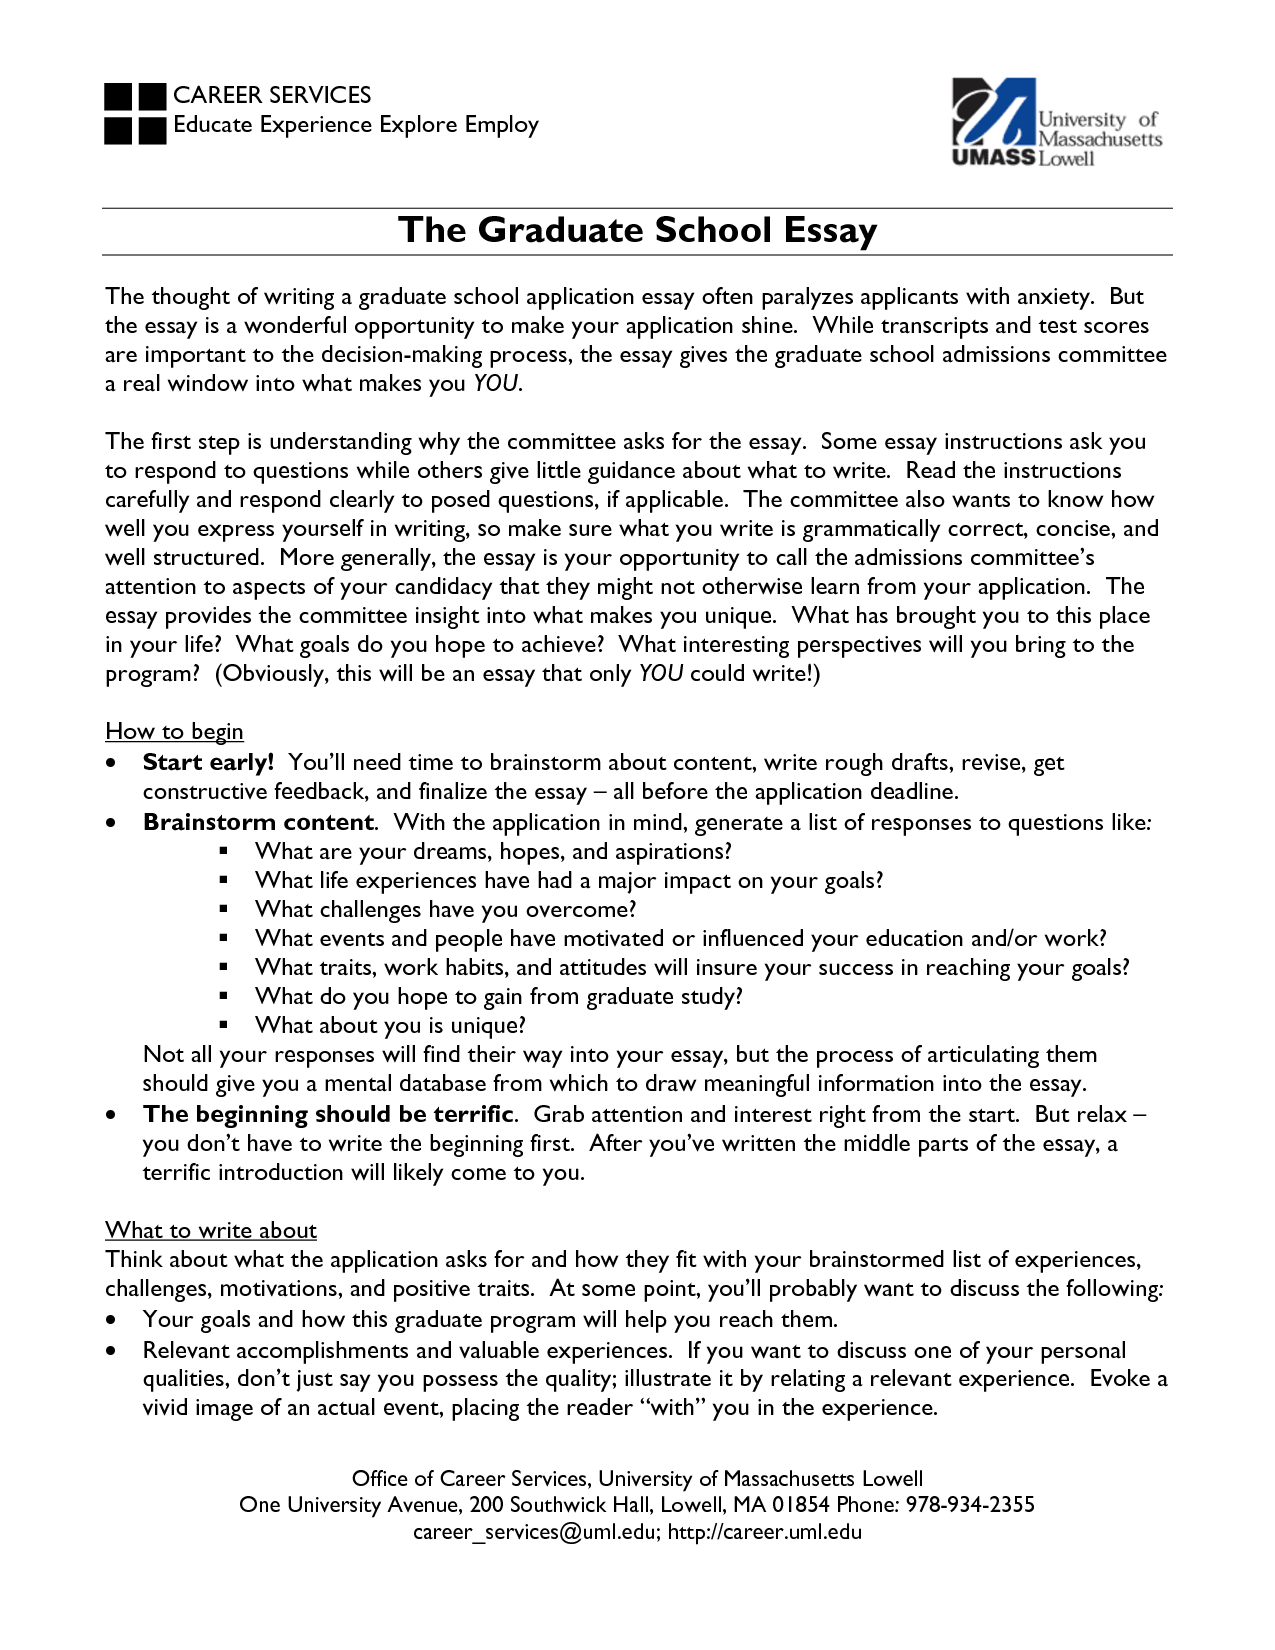 Essay about when i graduated from high school